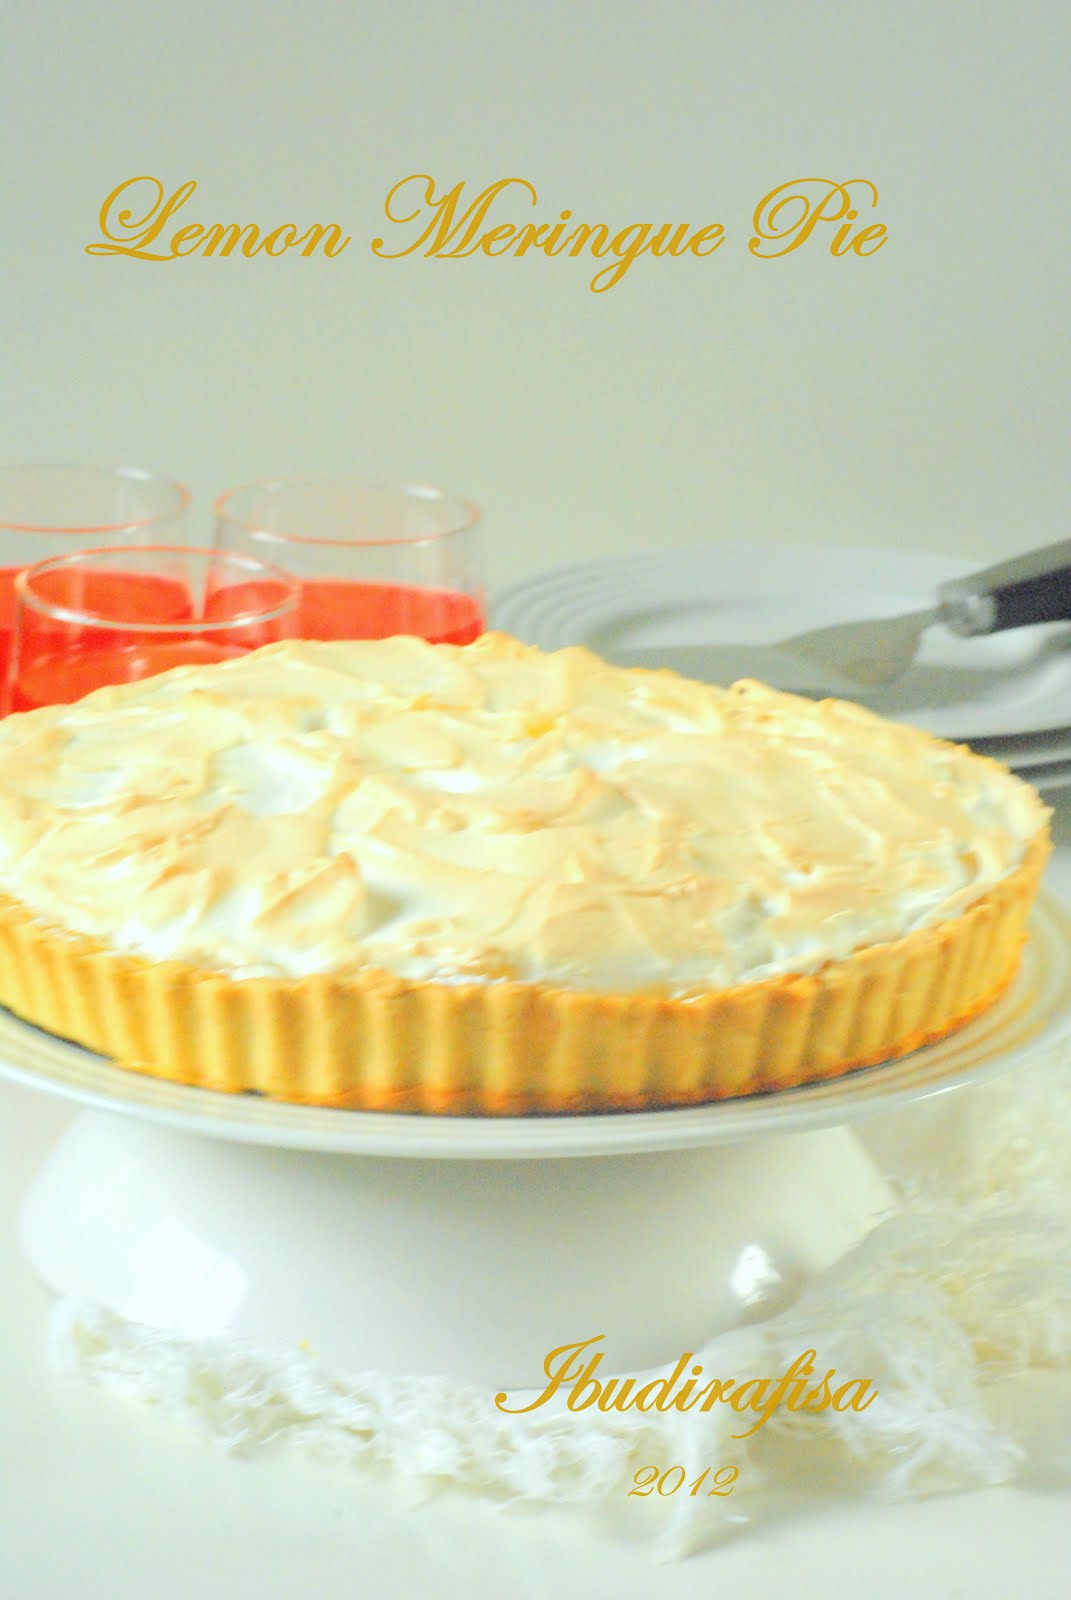 Ibudirafisa Durian Cup 75gr To Lightly Touch The Meringue Create Peaks Bake Oven For 8 10 Minutes Or Until Golden Set Aside 15 Minute Cool